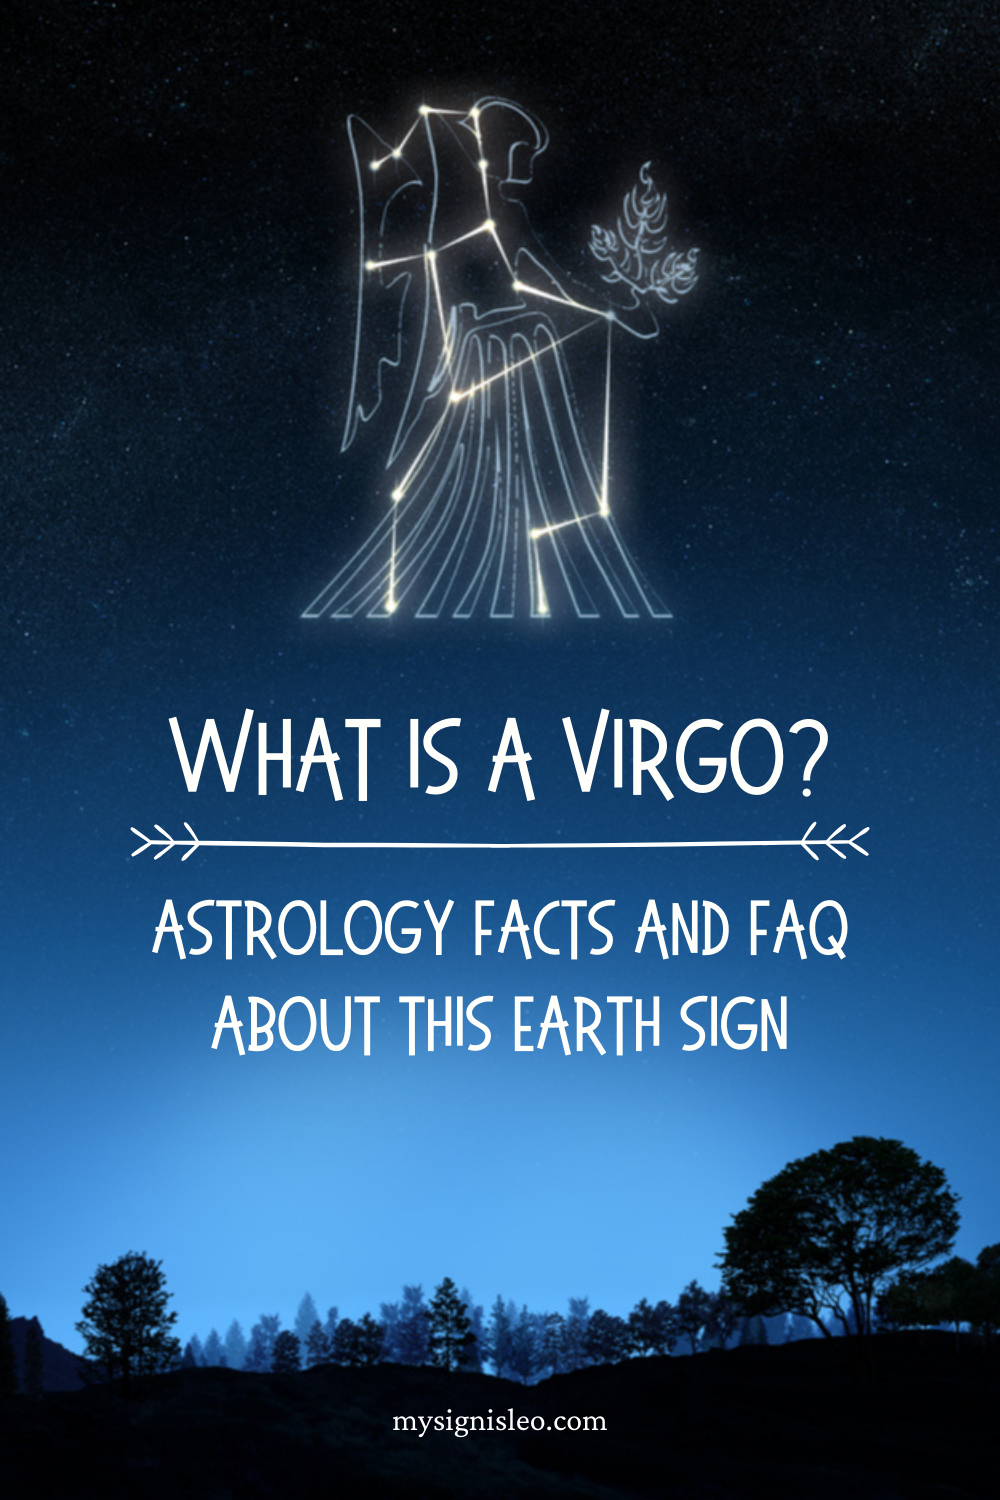 What Is A Virgo? Astrology Facts And FAQ About This Earth Sign, Virgo Zodiac Traits #virgo #virgosign #astrology #zodiac